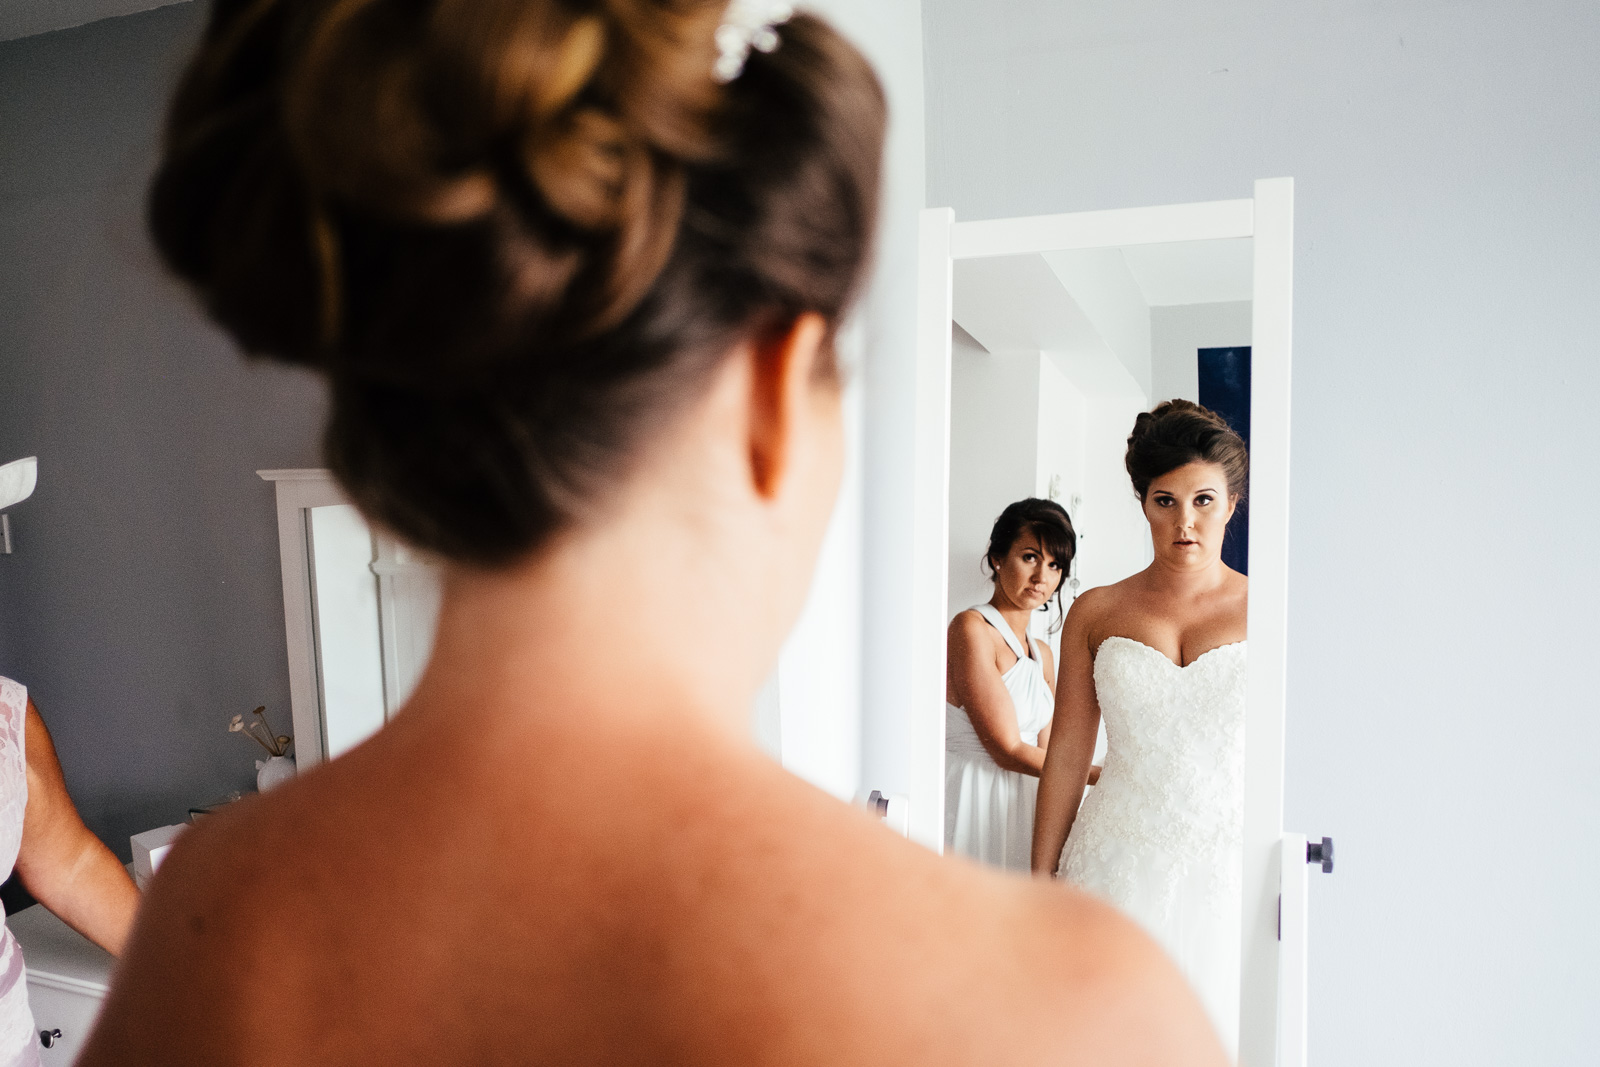 A bride checks her reflection in a mirror. Photo by Sam and Steve Photography